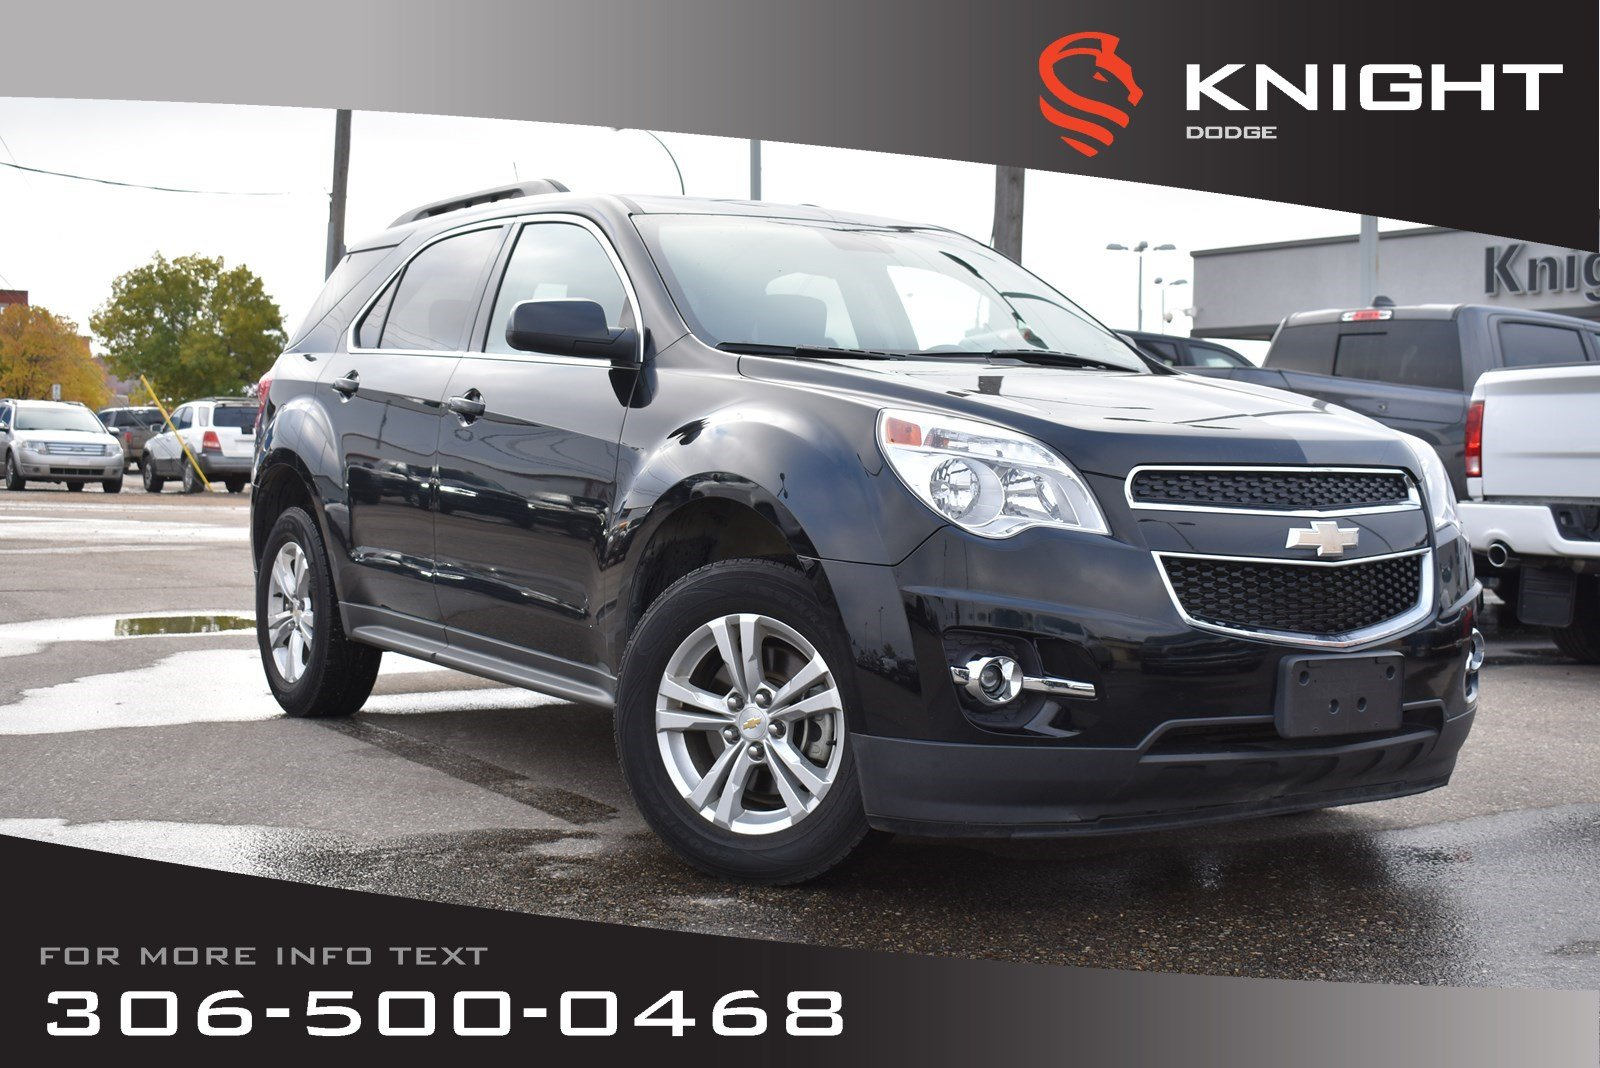 Pre-Owned 2012 Chevrolet Equinox 1LT | Remote Start | Bluetooth | Back Up Camera